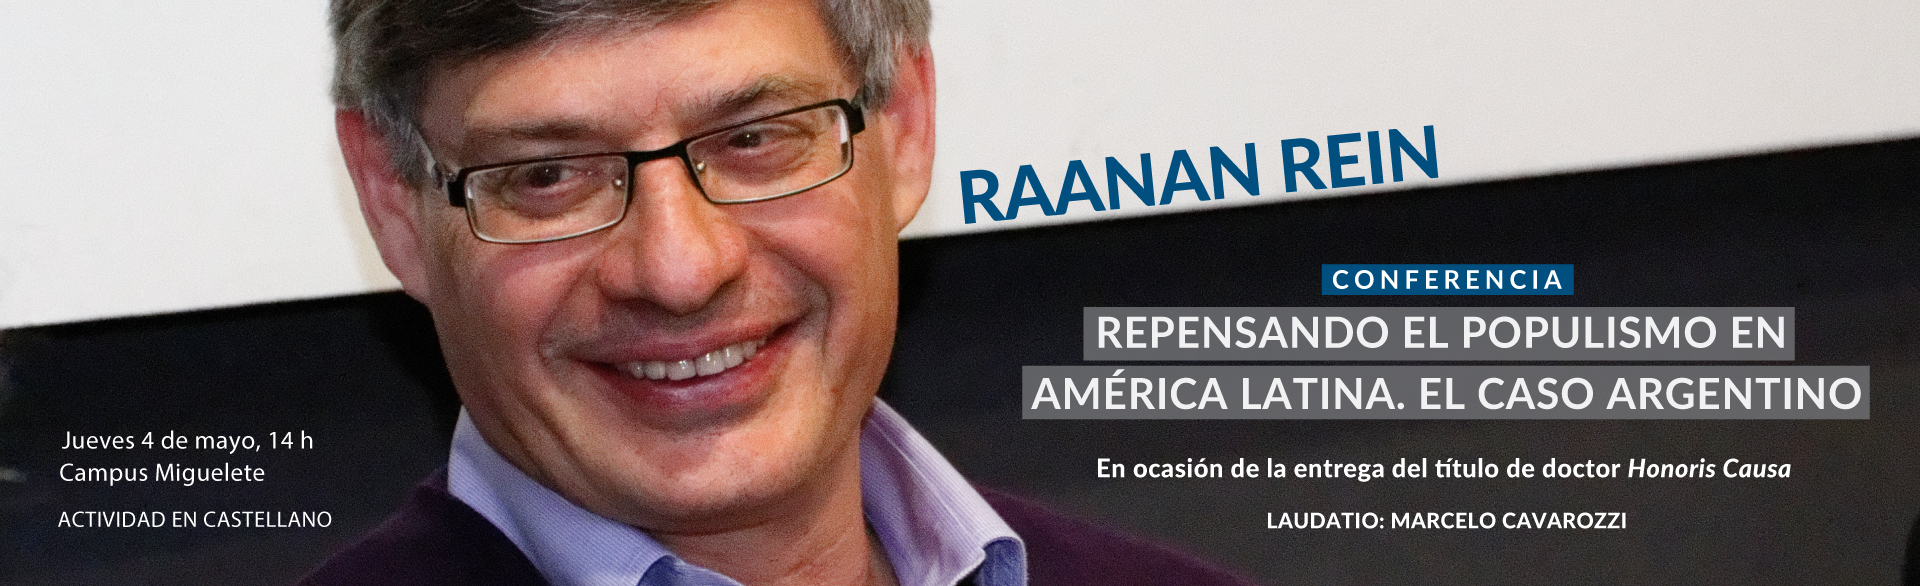 Raanan Rein Honoris Causa